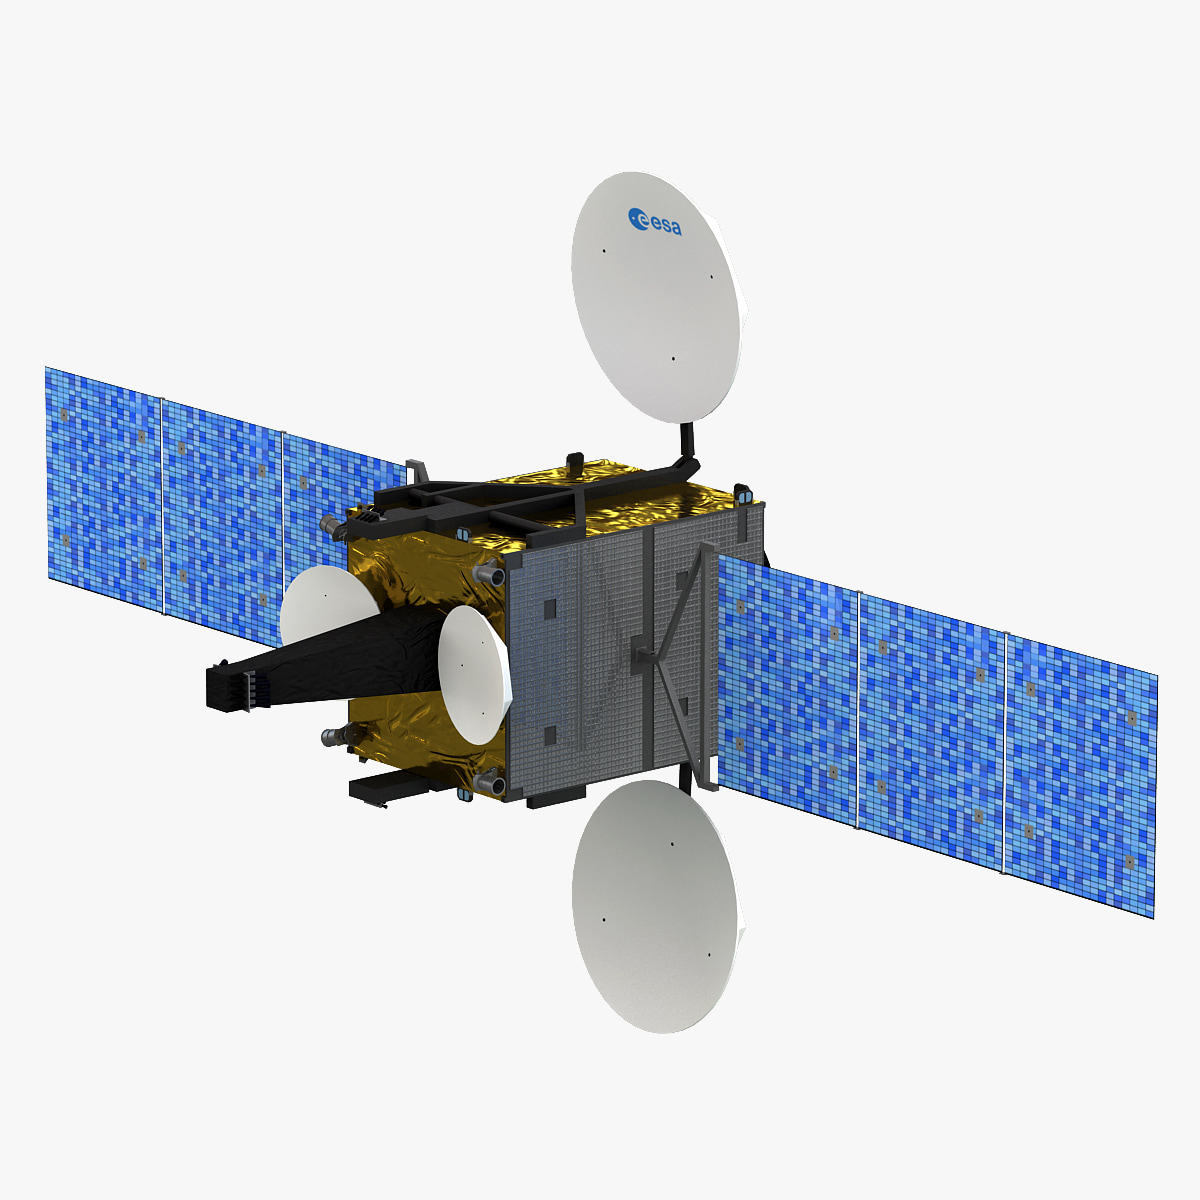 Communications_Satellite_GEO_000.jpg